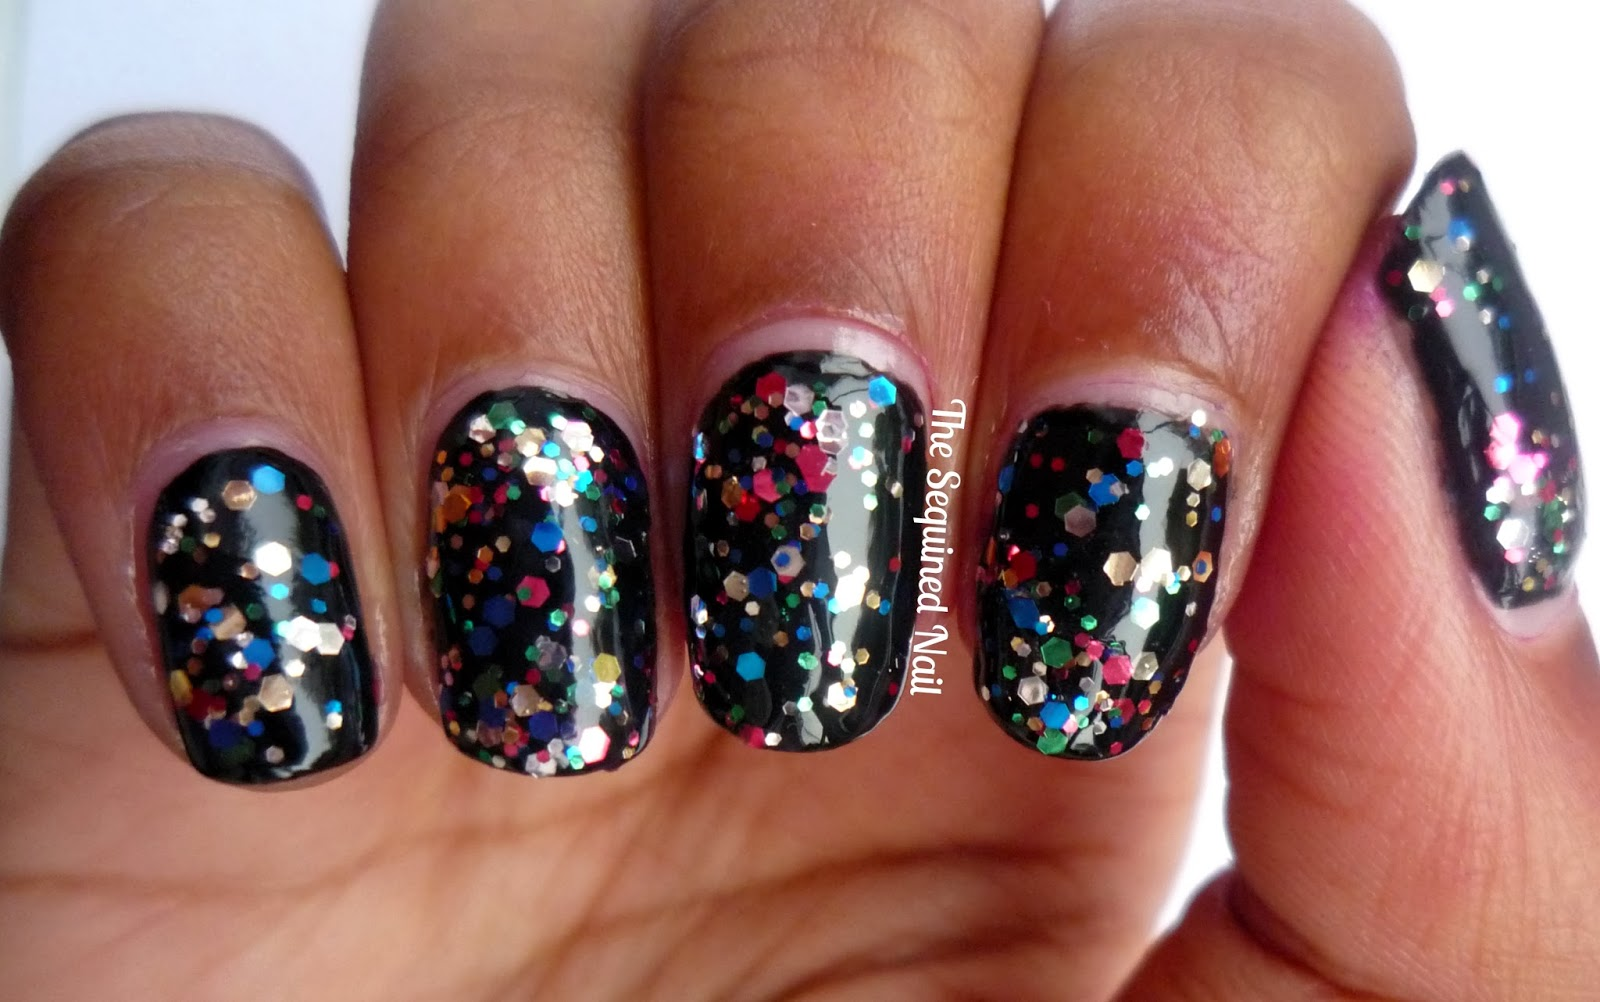 new years acrylic nails - 28 images - new years nails, new ...